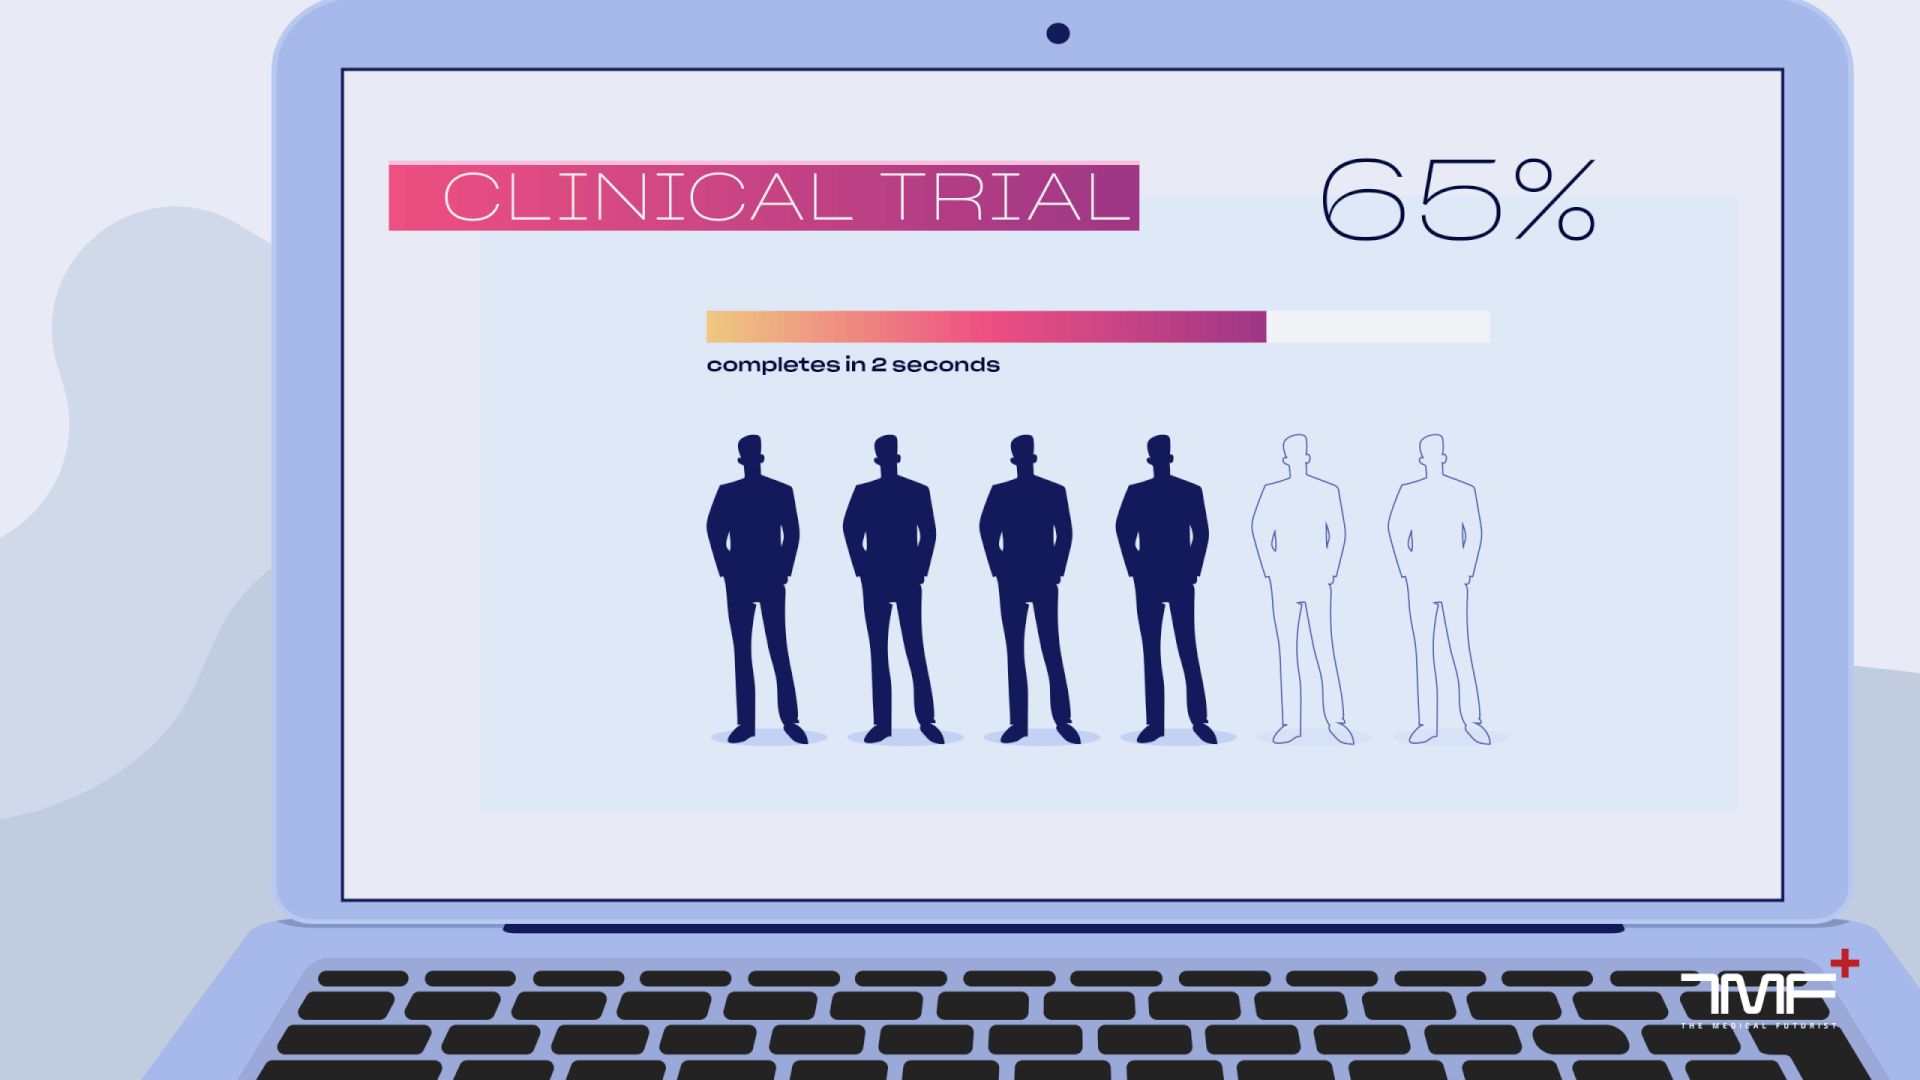 Healthcare technology: in silico trials